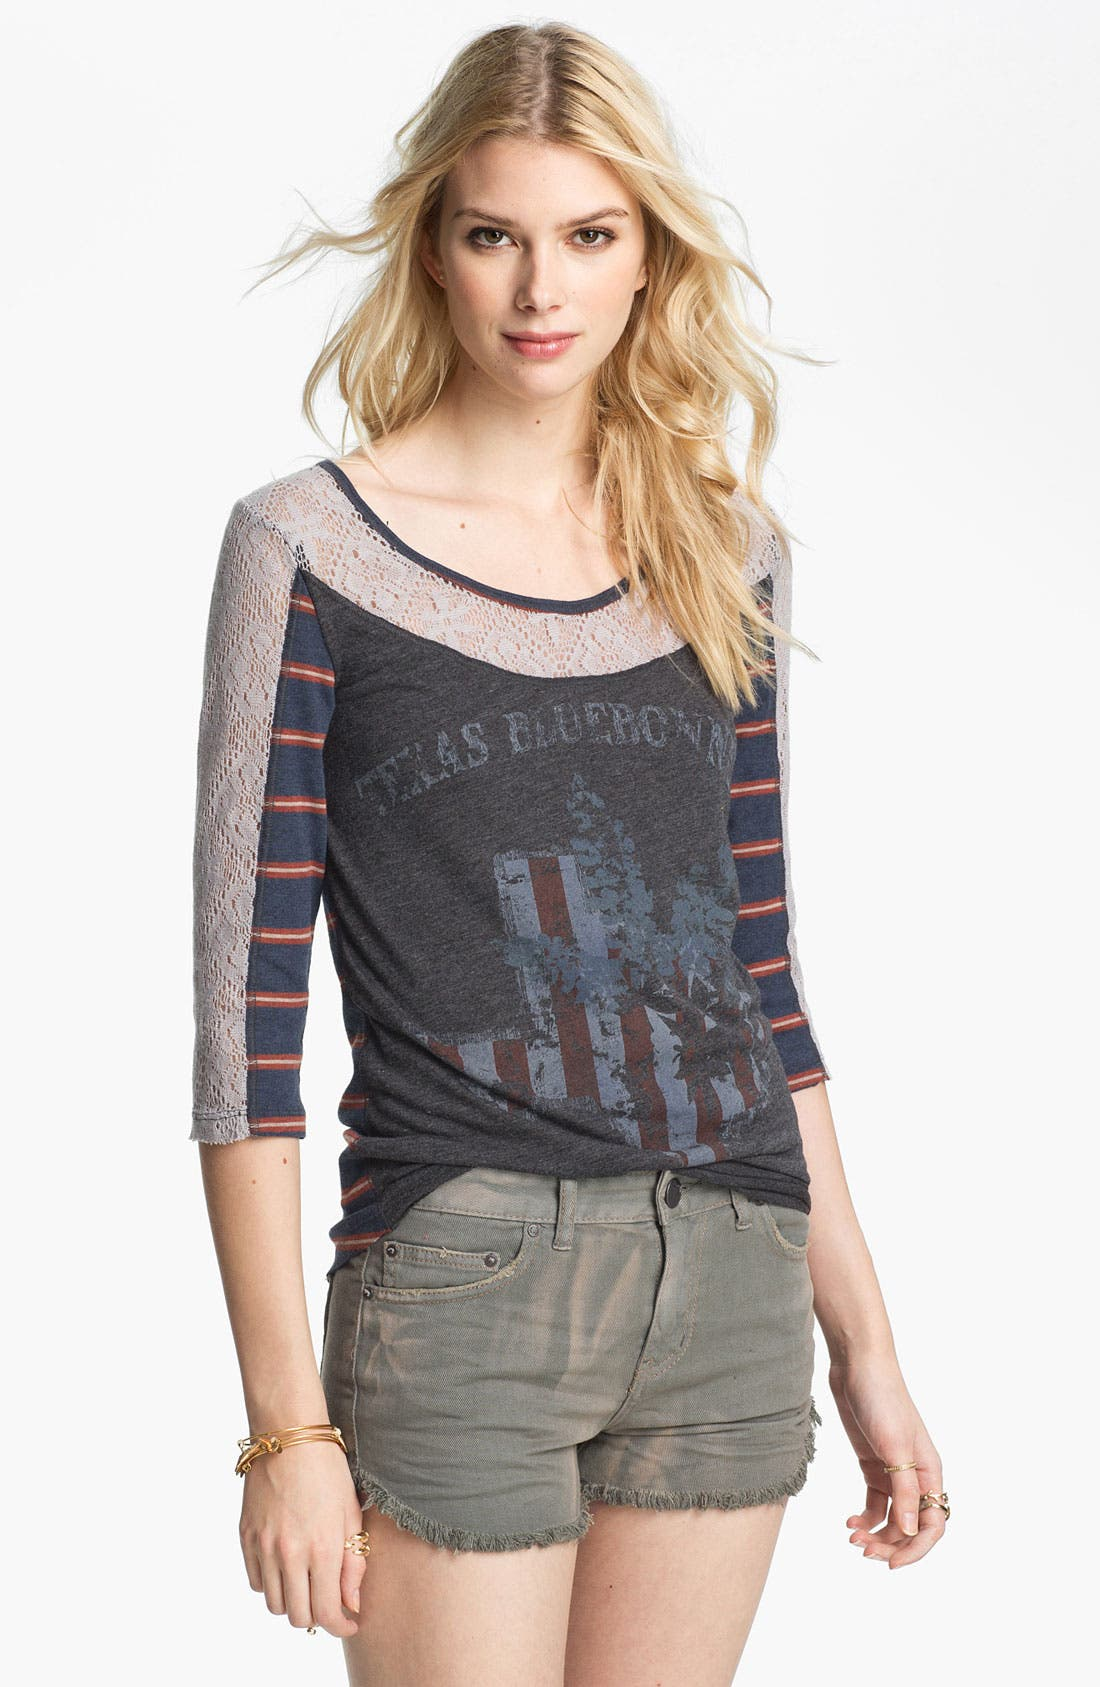 Alternate Image 1 Selected - Free People 'Love Me' Lace Trim Graphic Tee